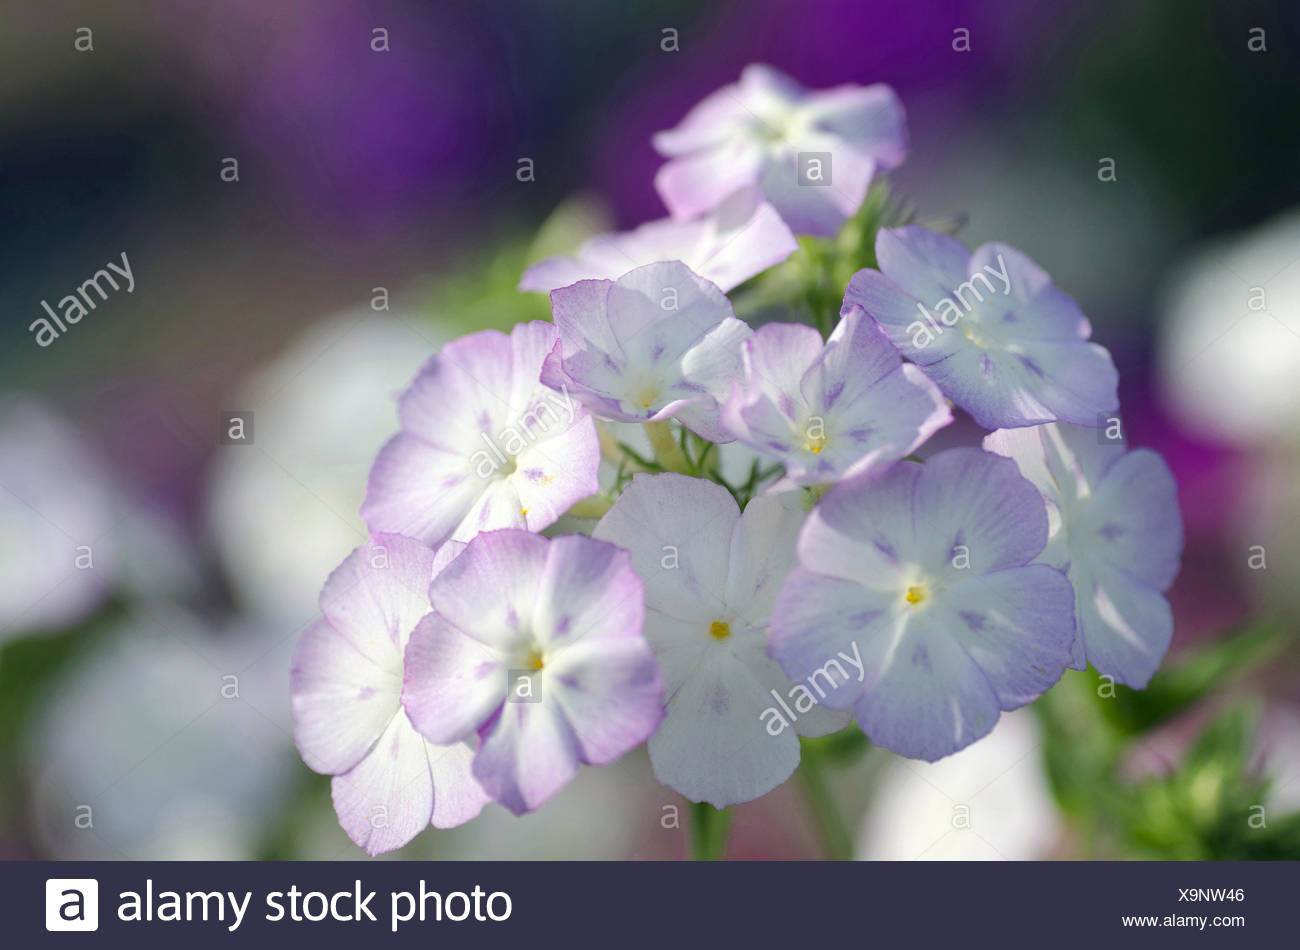 A Bunch Of Small Blue And White Flowers Harish Chandra Research